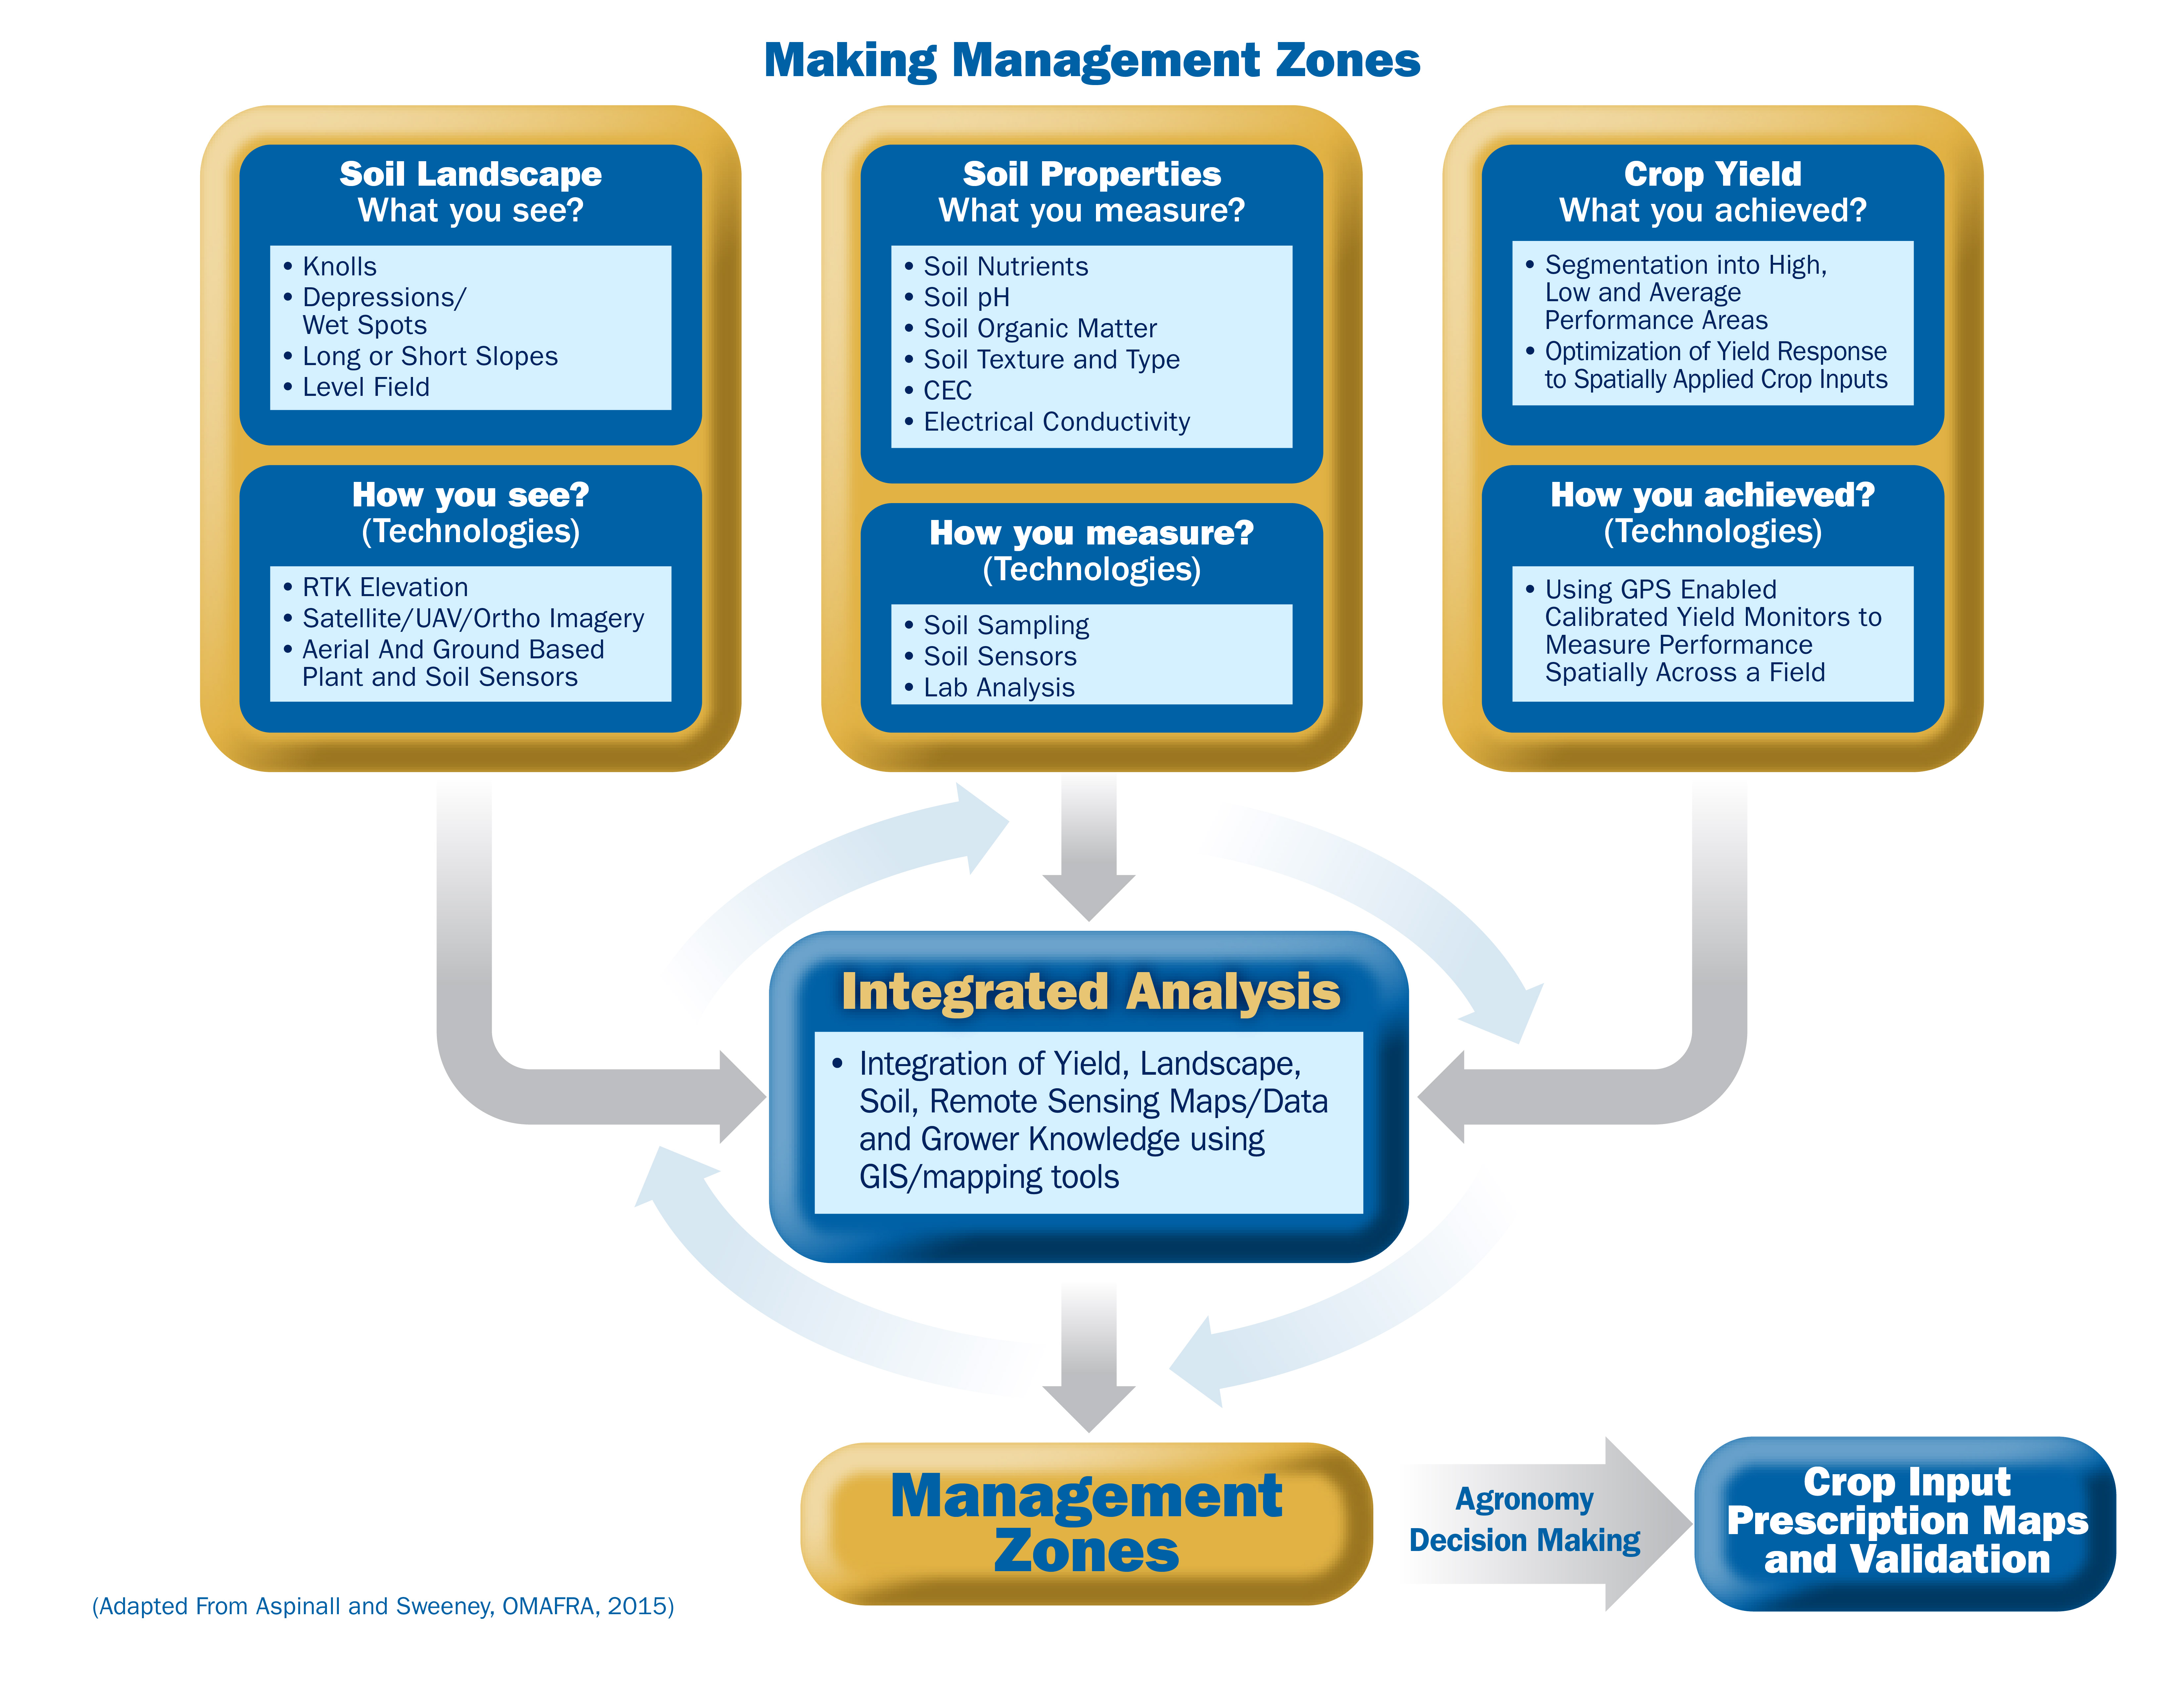 Representation of a management zone development process (adapted from Aspinall and Sweeney, OMAFRA, 2014).